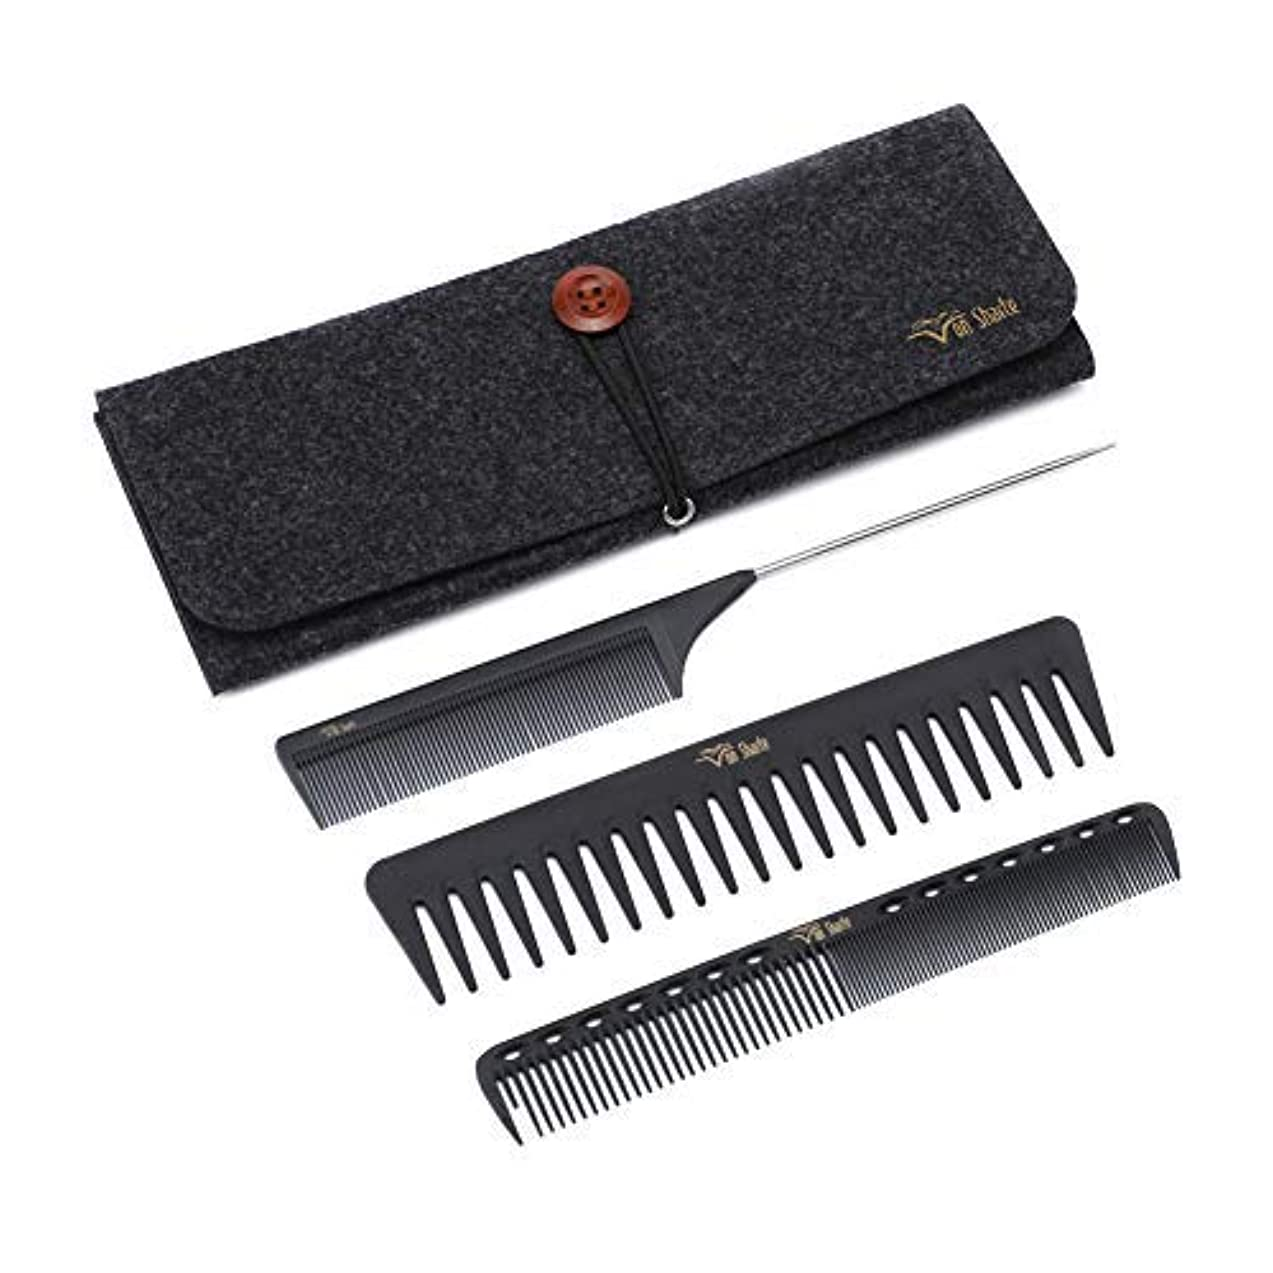 彼らはレトルトマークダウンStyling Comb Set,Hairdresser Barber Comb Cutting Hair Comb Carbon Fiber Wide Tooth Comb Metal Rat Pin Tail Comb...